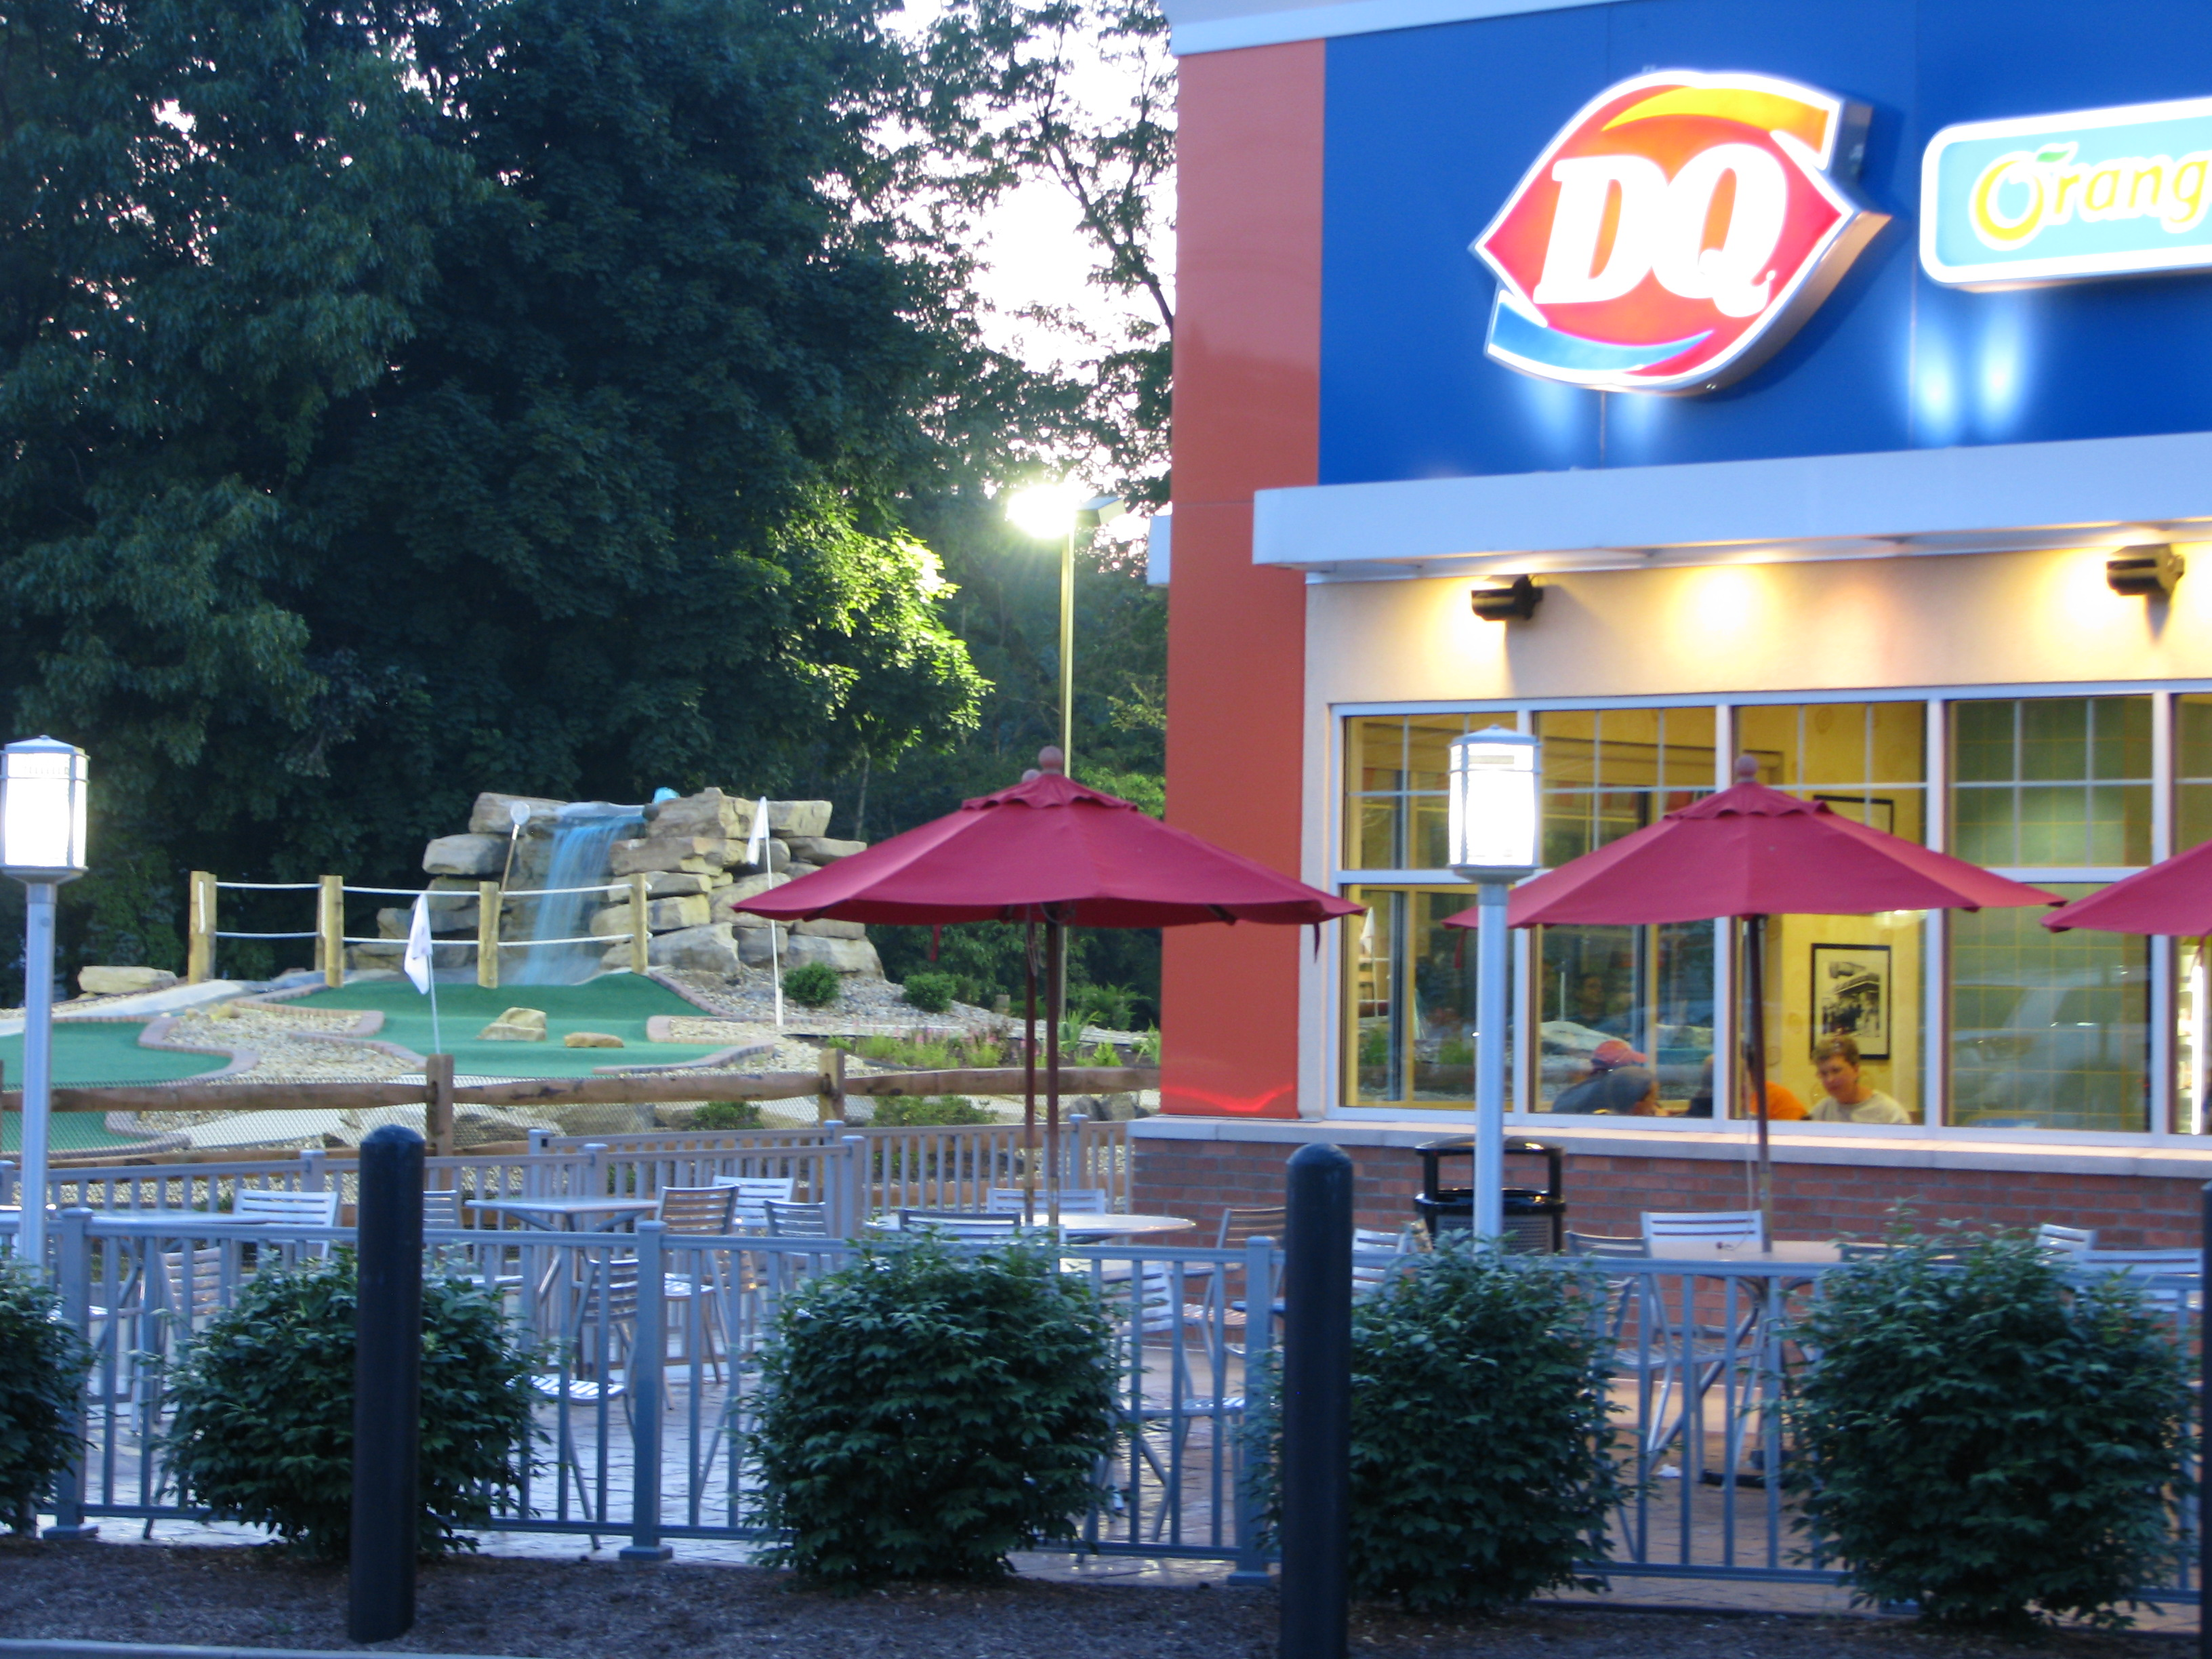 mini golf next to Dairy Queen